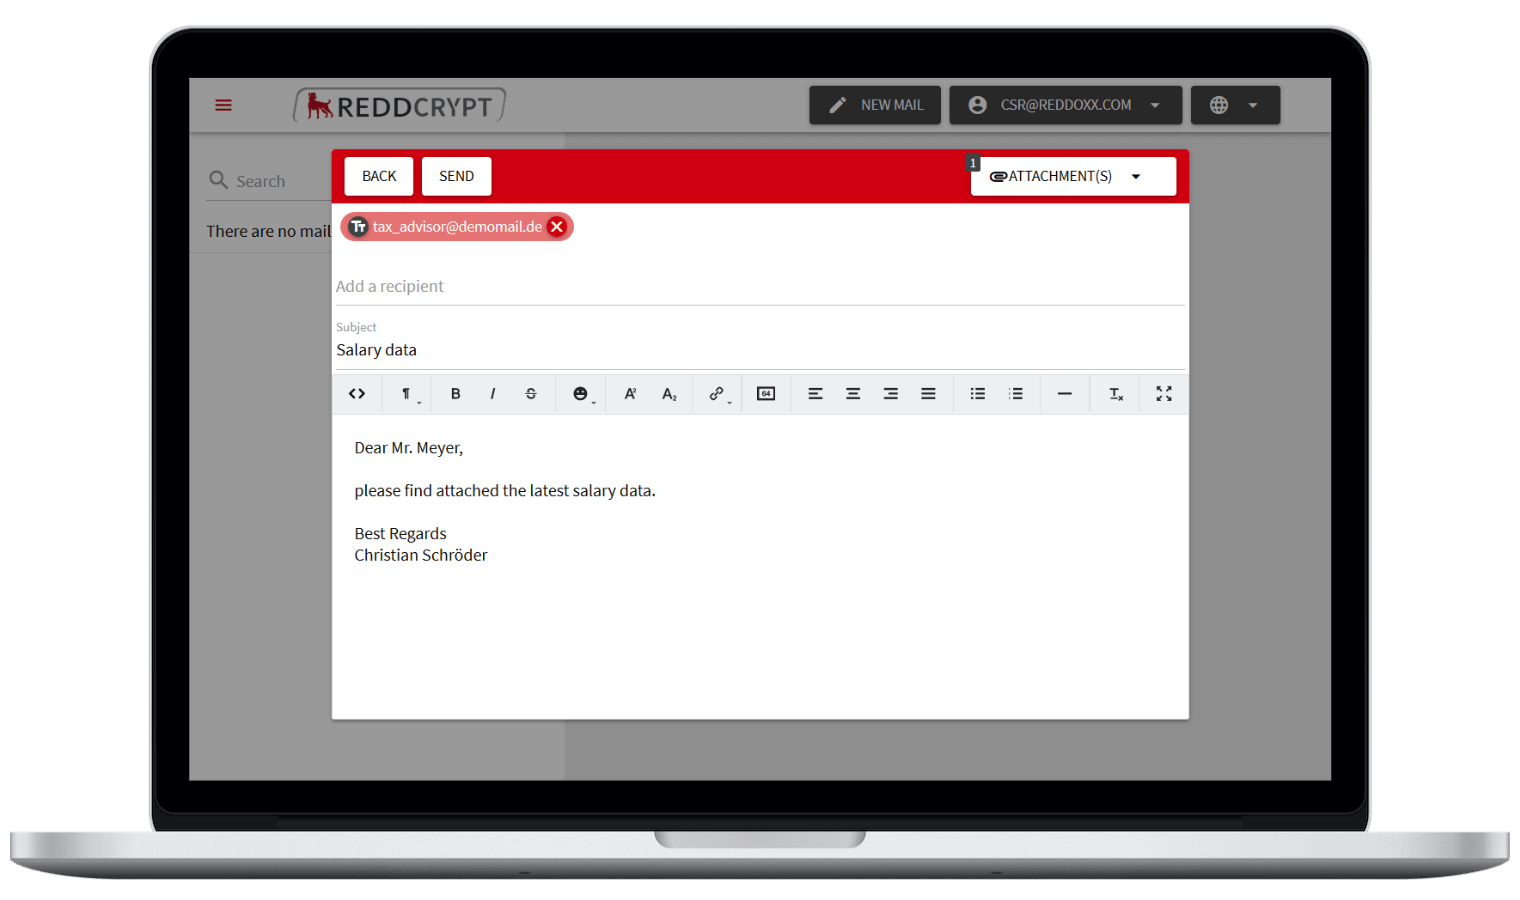 With the REDDCRYPT Web App you can encrypt and decrypt your e-mail on any device - without certificates